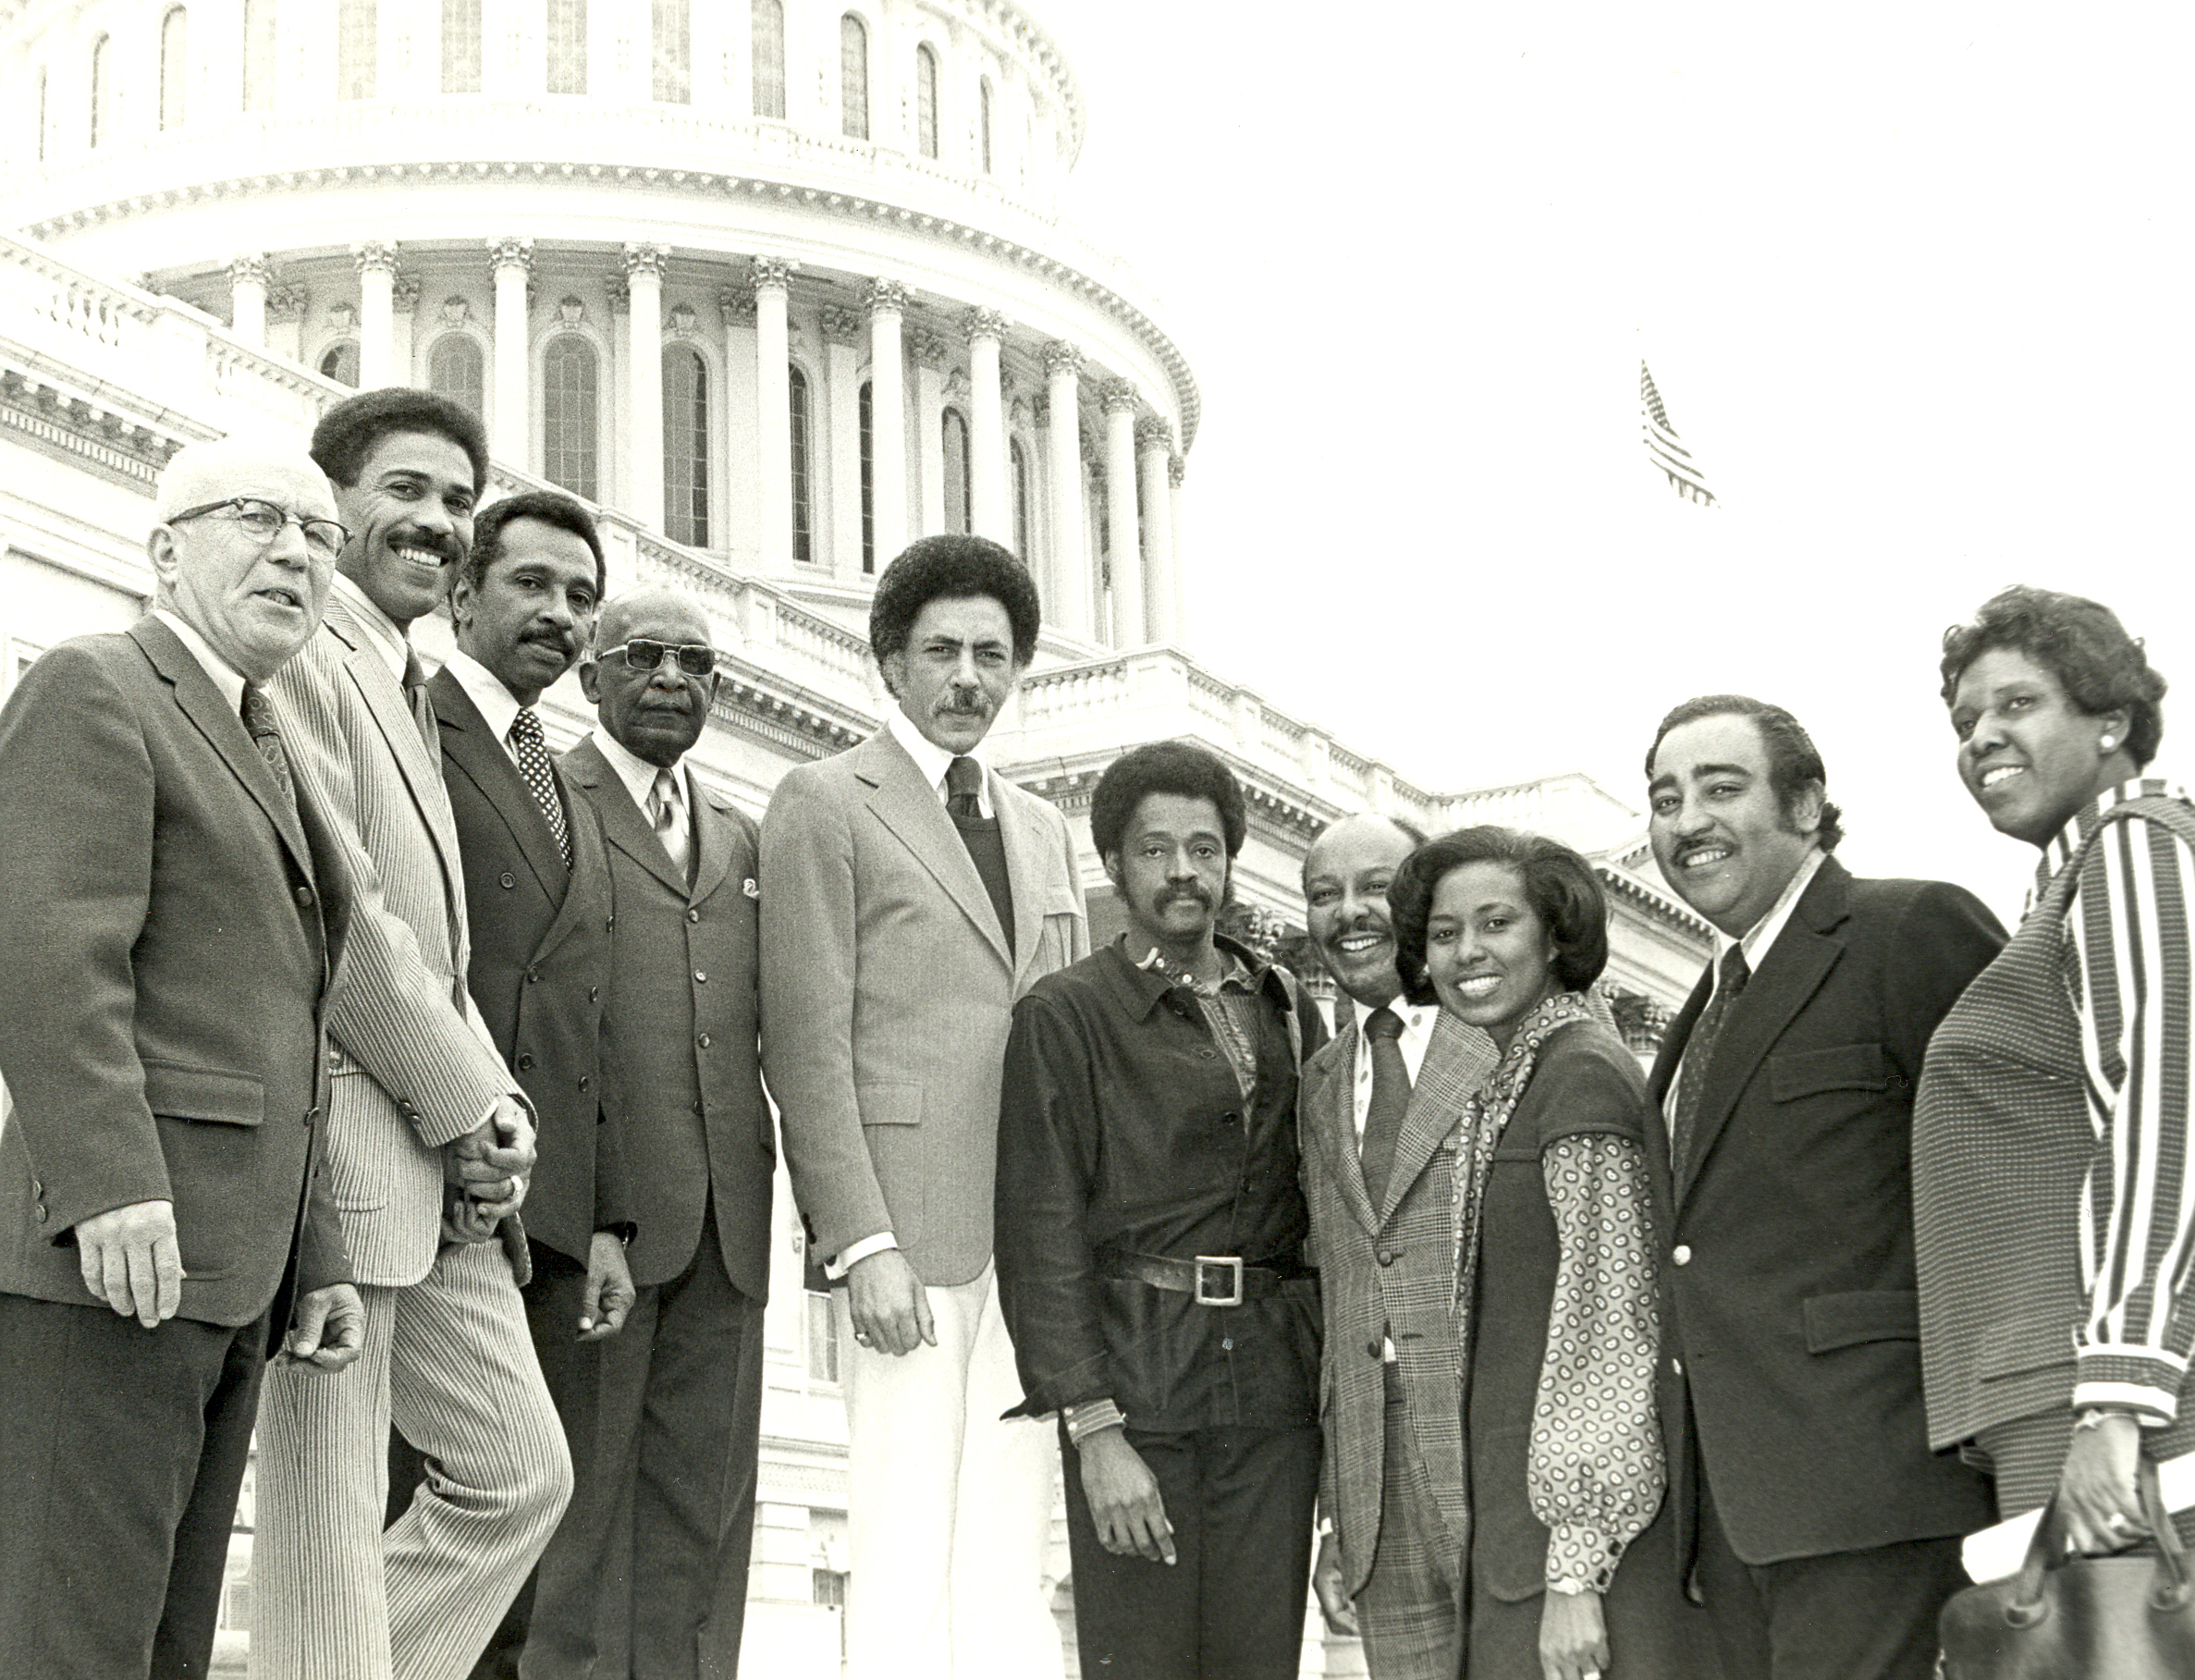 UNITED STATES: File photo - Congressional Black Caucus Members with Actor Melvin Van Peebles outside the U.S. Capitol. Left to Right: Rep. Augustus Hawkins (D-Calif.); Rep. William Clay, Sr. (D-Mo.); Rep. Parren Mitchell (D-Md.); Rep. Robert Nix, Sr. (D-Pa.); Rep. Ronald Dellums (D-Calif.); Melvin Van Peebles; Rep. Louis Stokes (D-Ohio); Rep. Yvonne B. Burke (D-Calif.); Rep. Charles Rangel (D-N.Y.); and Rep. Barbara Jordan (D-Texas) (Photo courtesy of the Moorland-Springarn Research Center, Howard University).